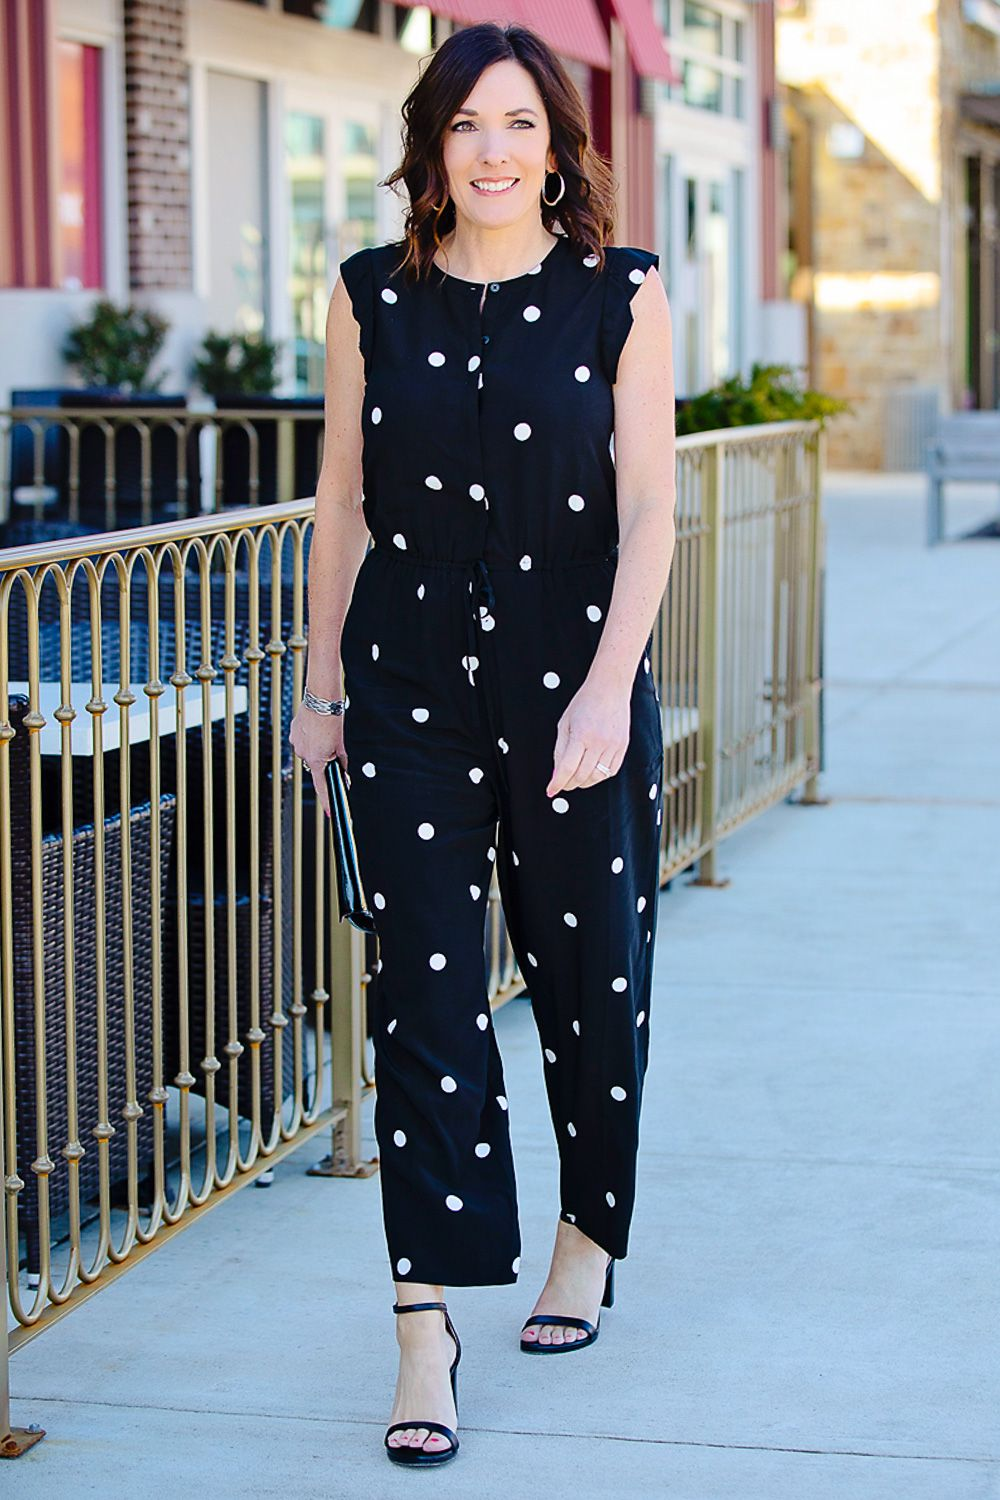 Connect The Dots {Spring Jumpsuit Outfit} | Summer outfits ...